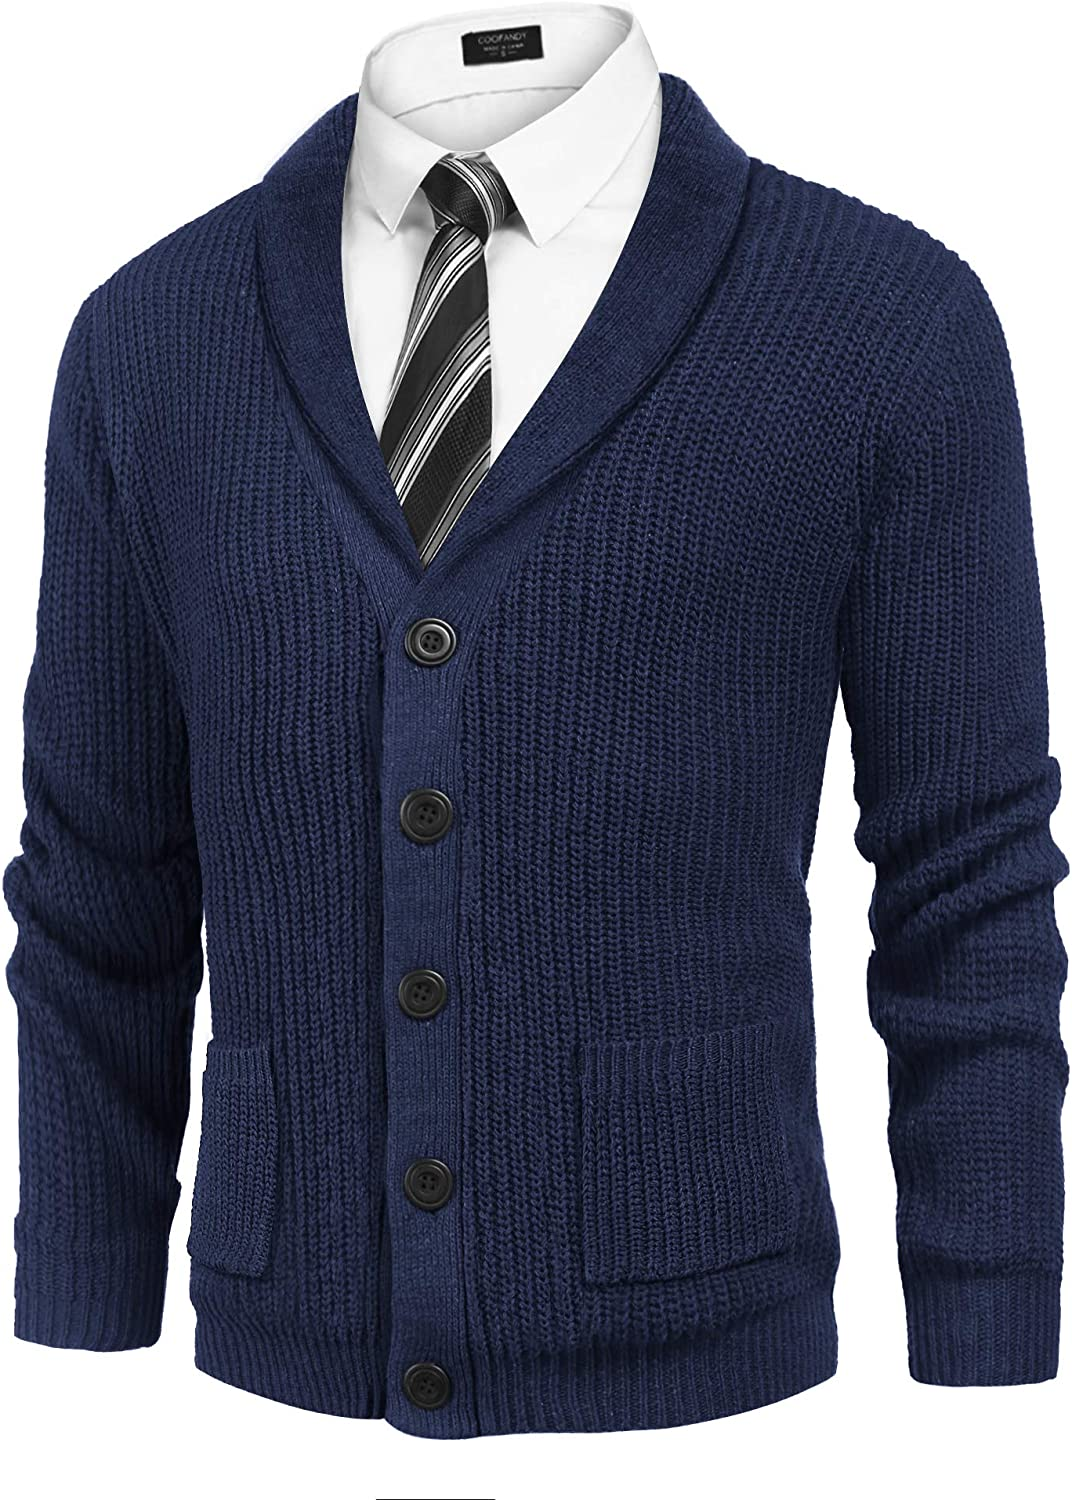 COOFANDY Men's Shawl Collar Cardigan Sweater Slim Fit Cable Knit Button up Cotton Sweater with Pockets